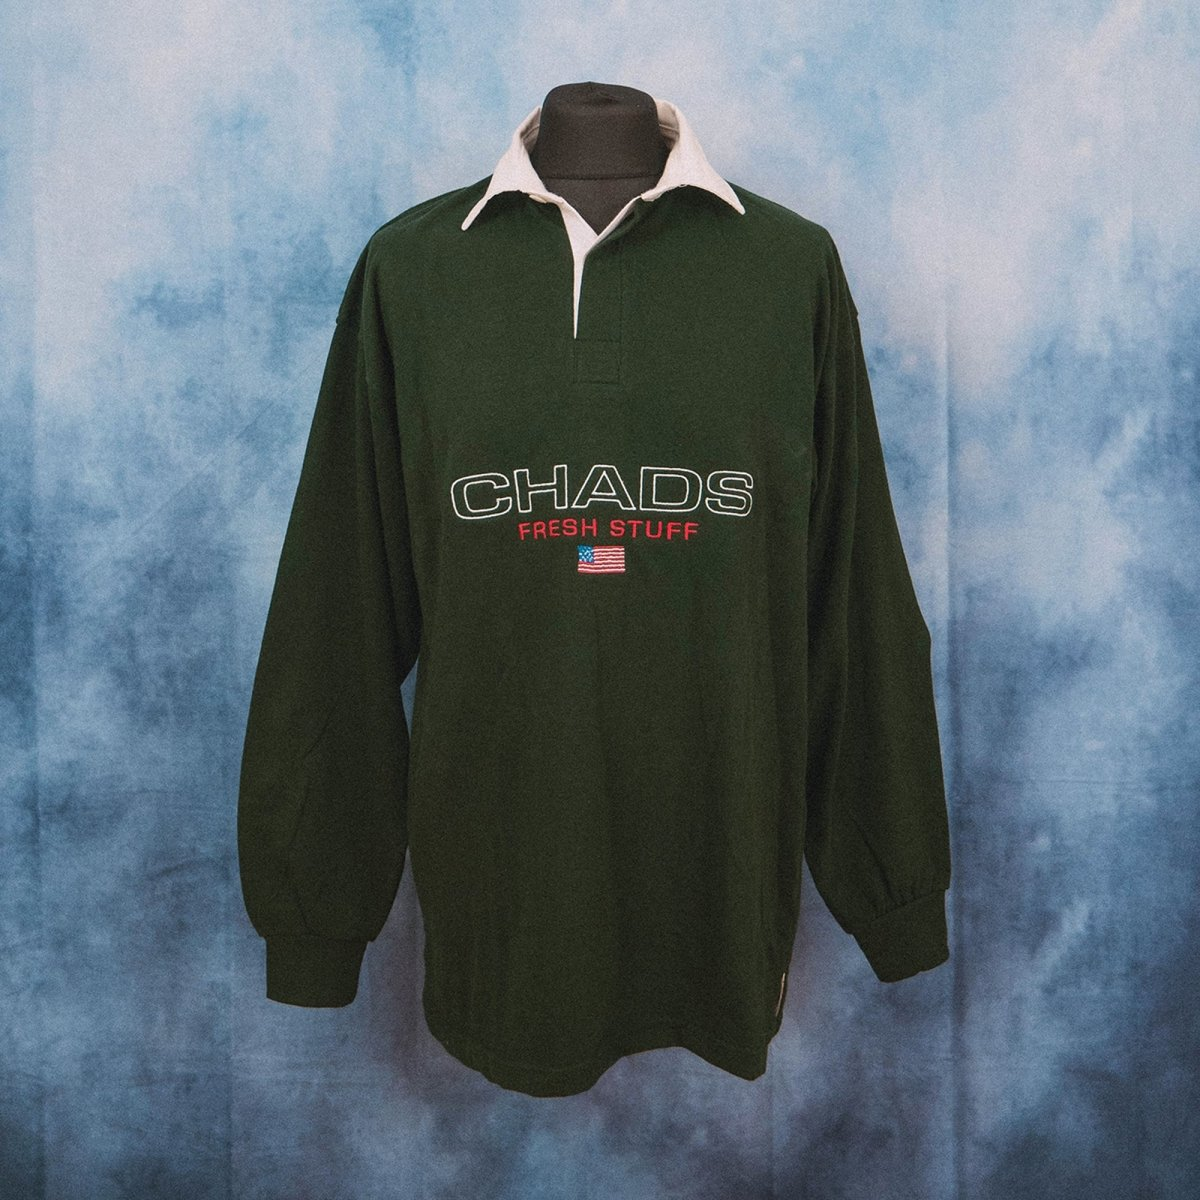 Chads Unisex Embroidered Green Rugby Shirt